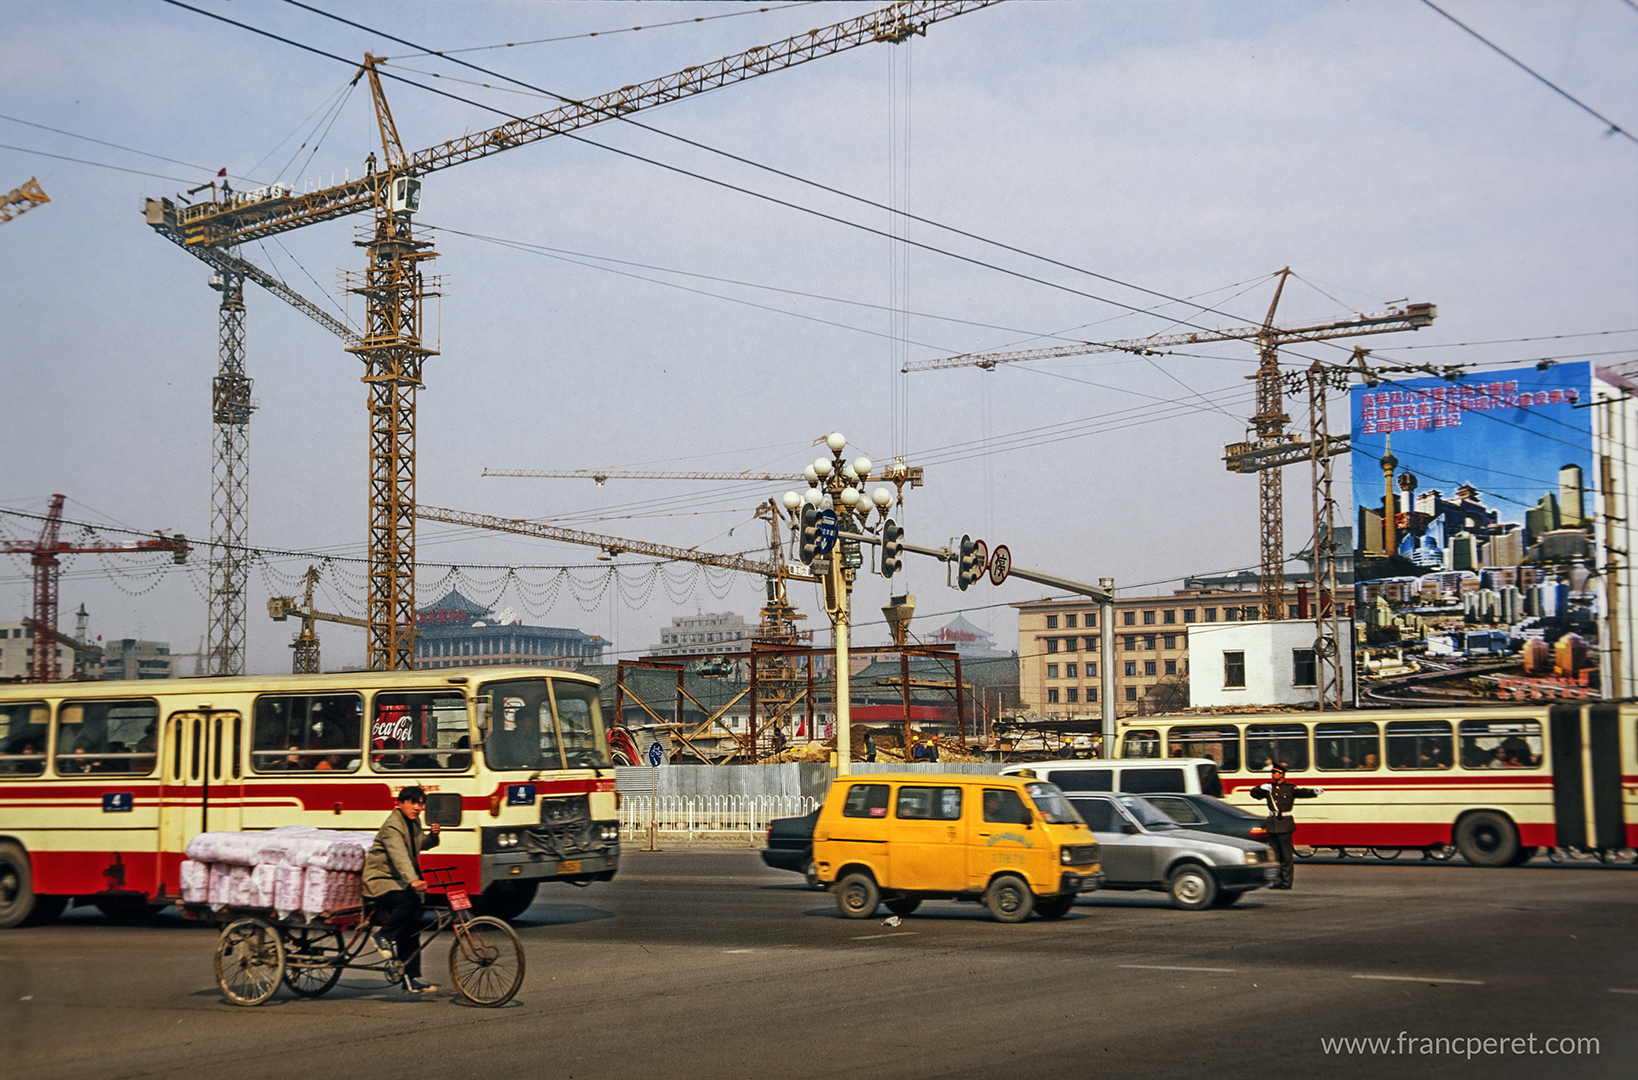 More cranes in the sky than cars in the street during Beijing lifting.